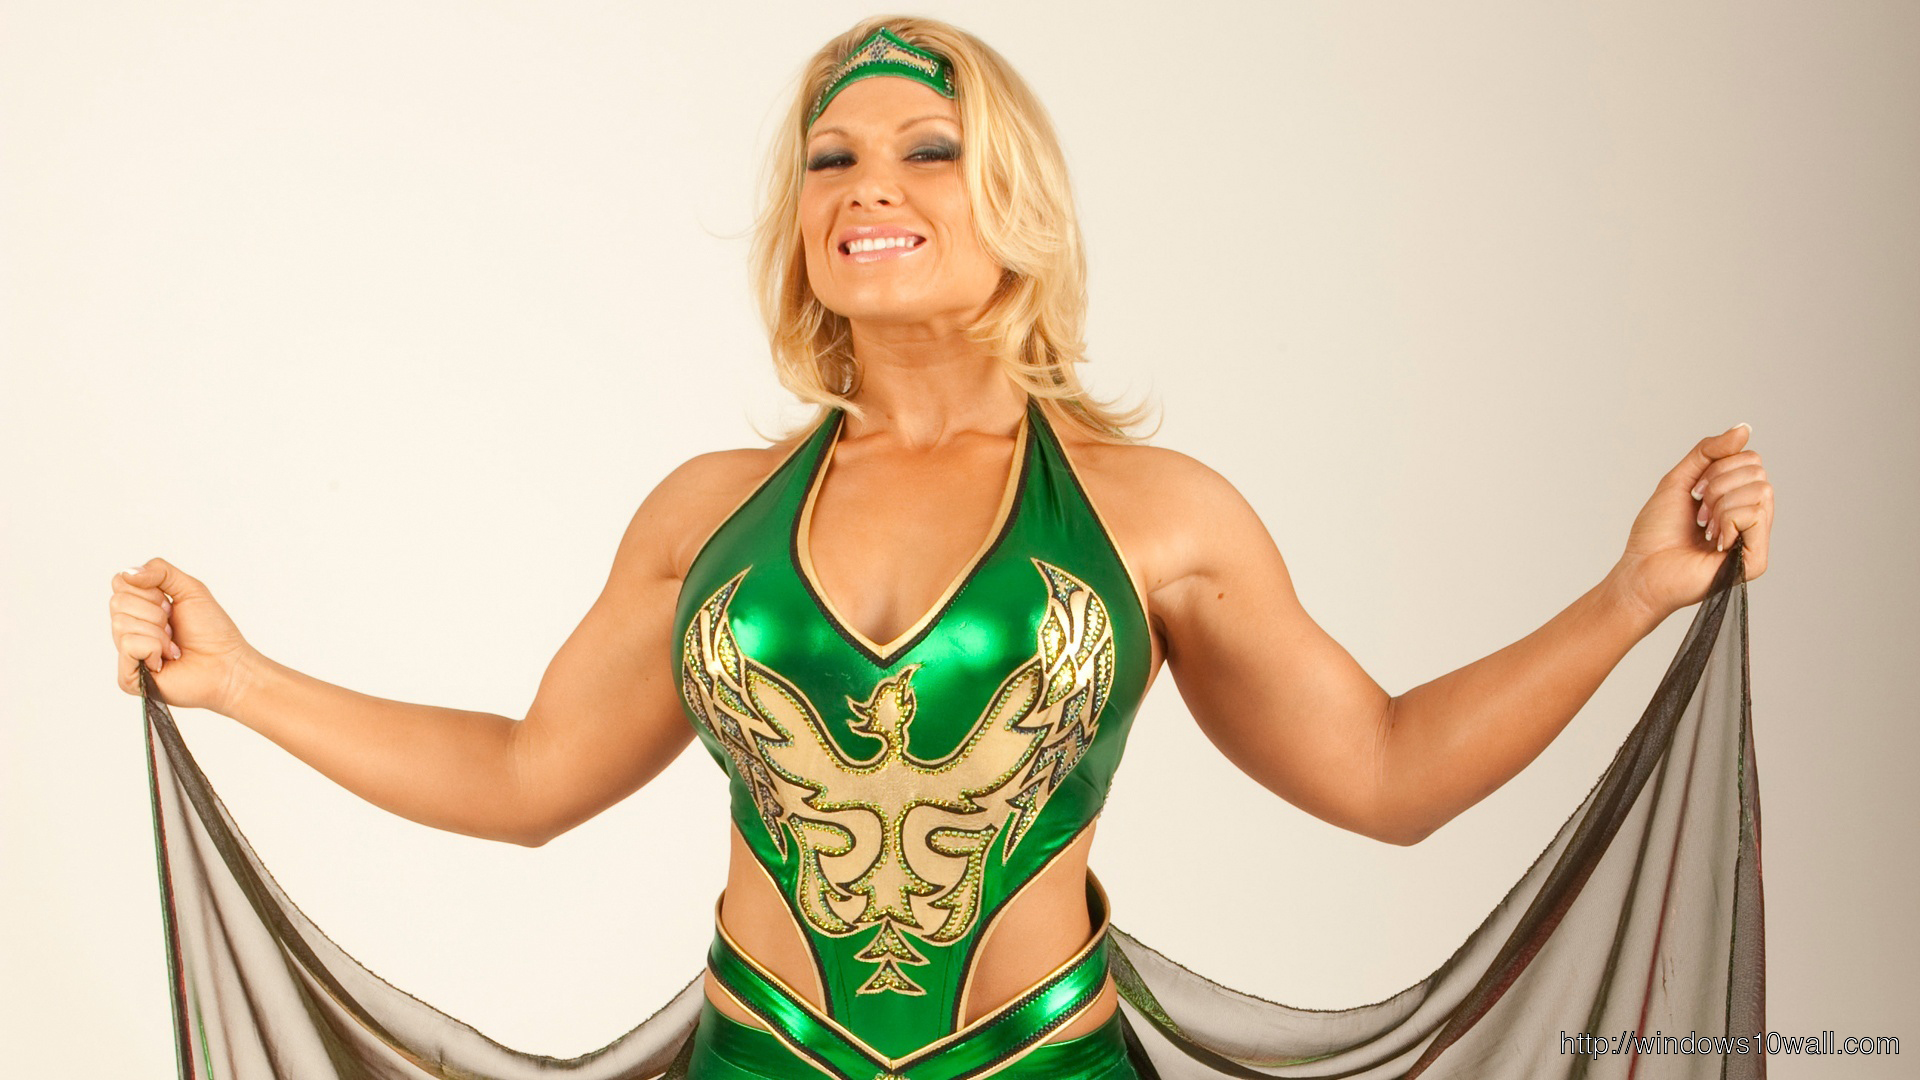 divas-champion-beth-phoenix-wallpaper